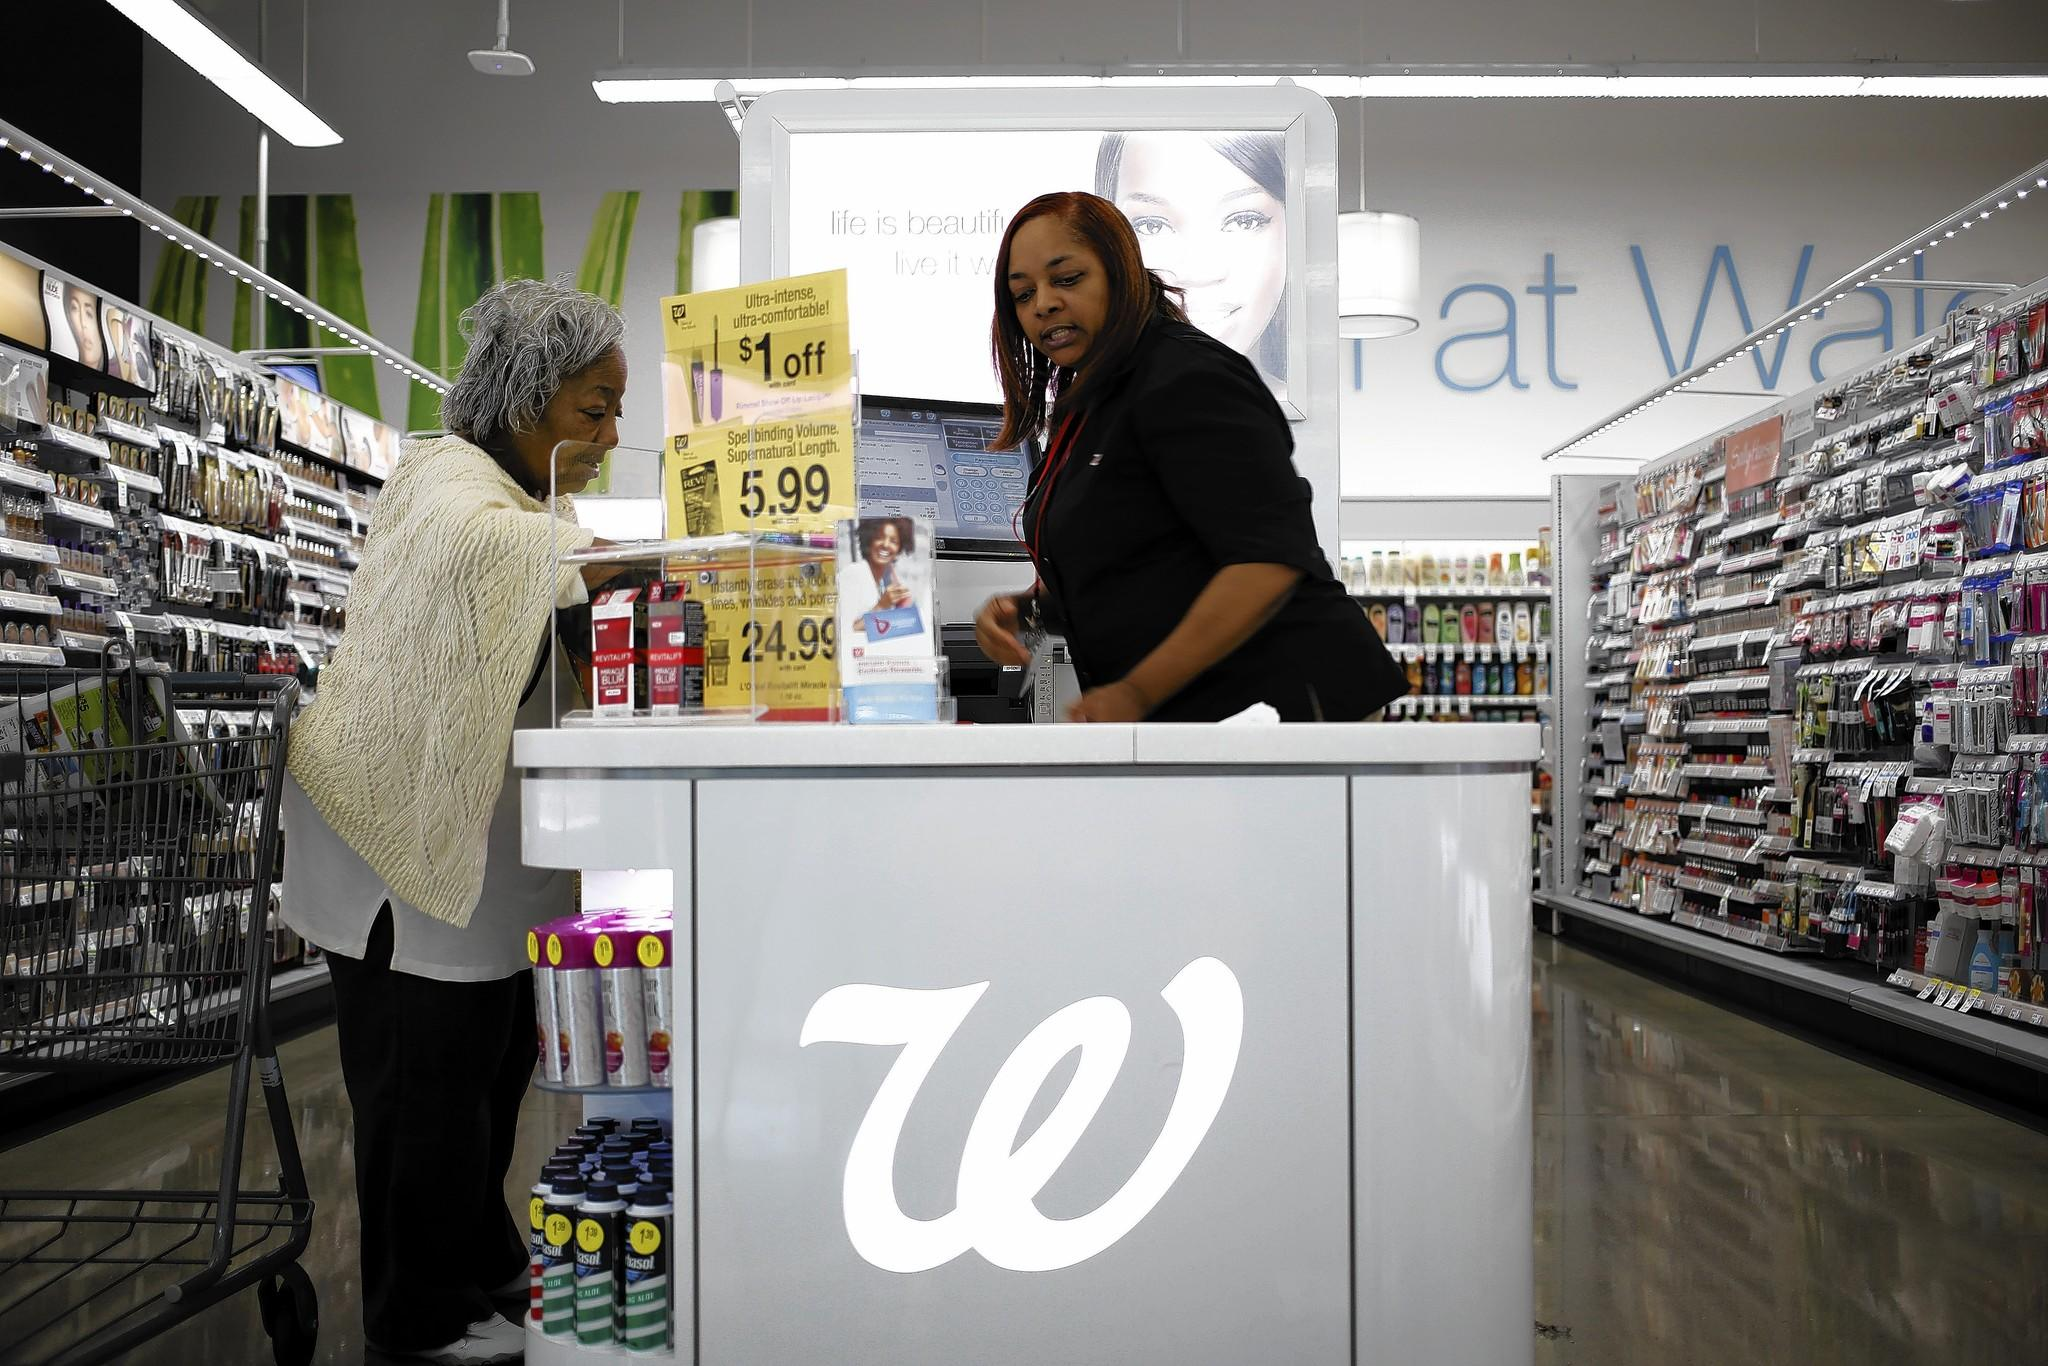 Deerfield-based Walgreen acquired 45 percent of Swiss-based Alliance Boots in 2012 and has the option to acquire the remaining 55 percent by 2015.